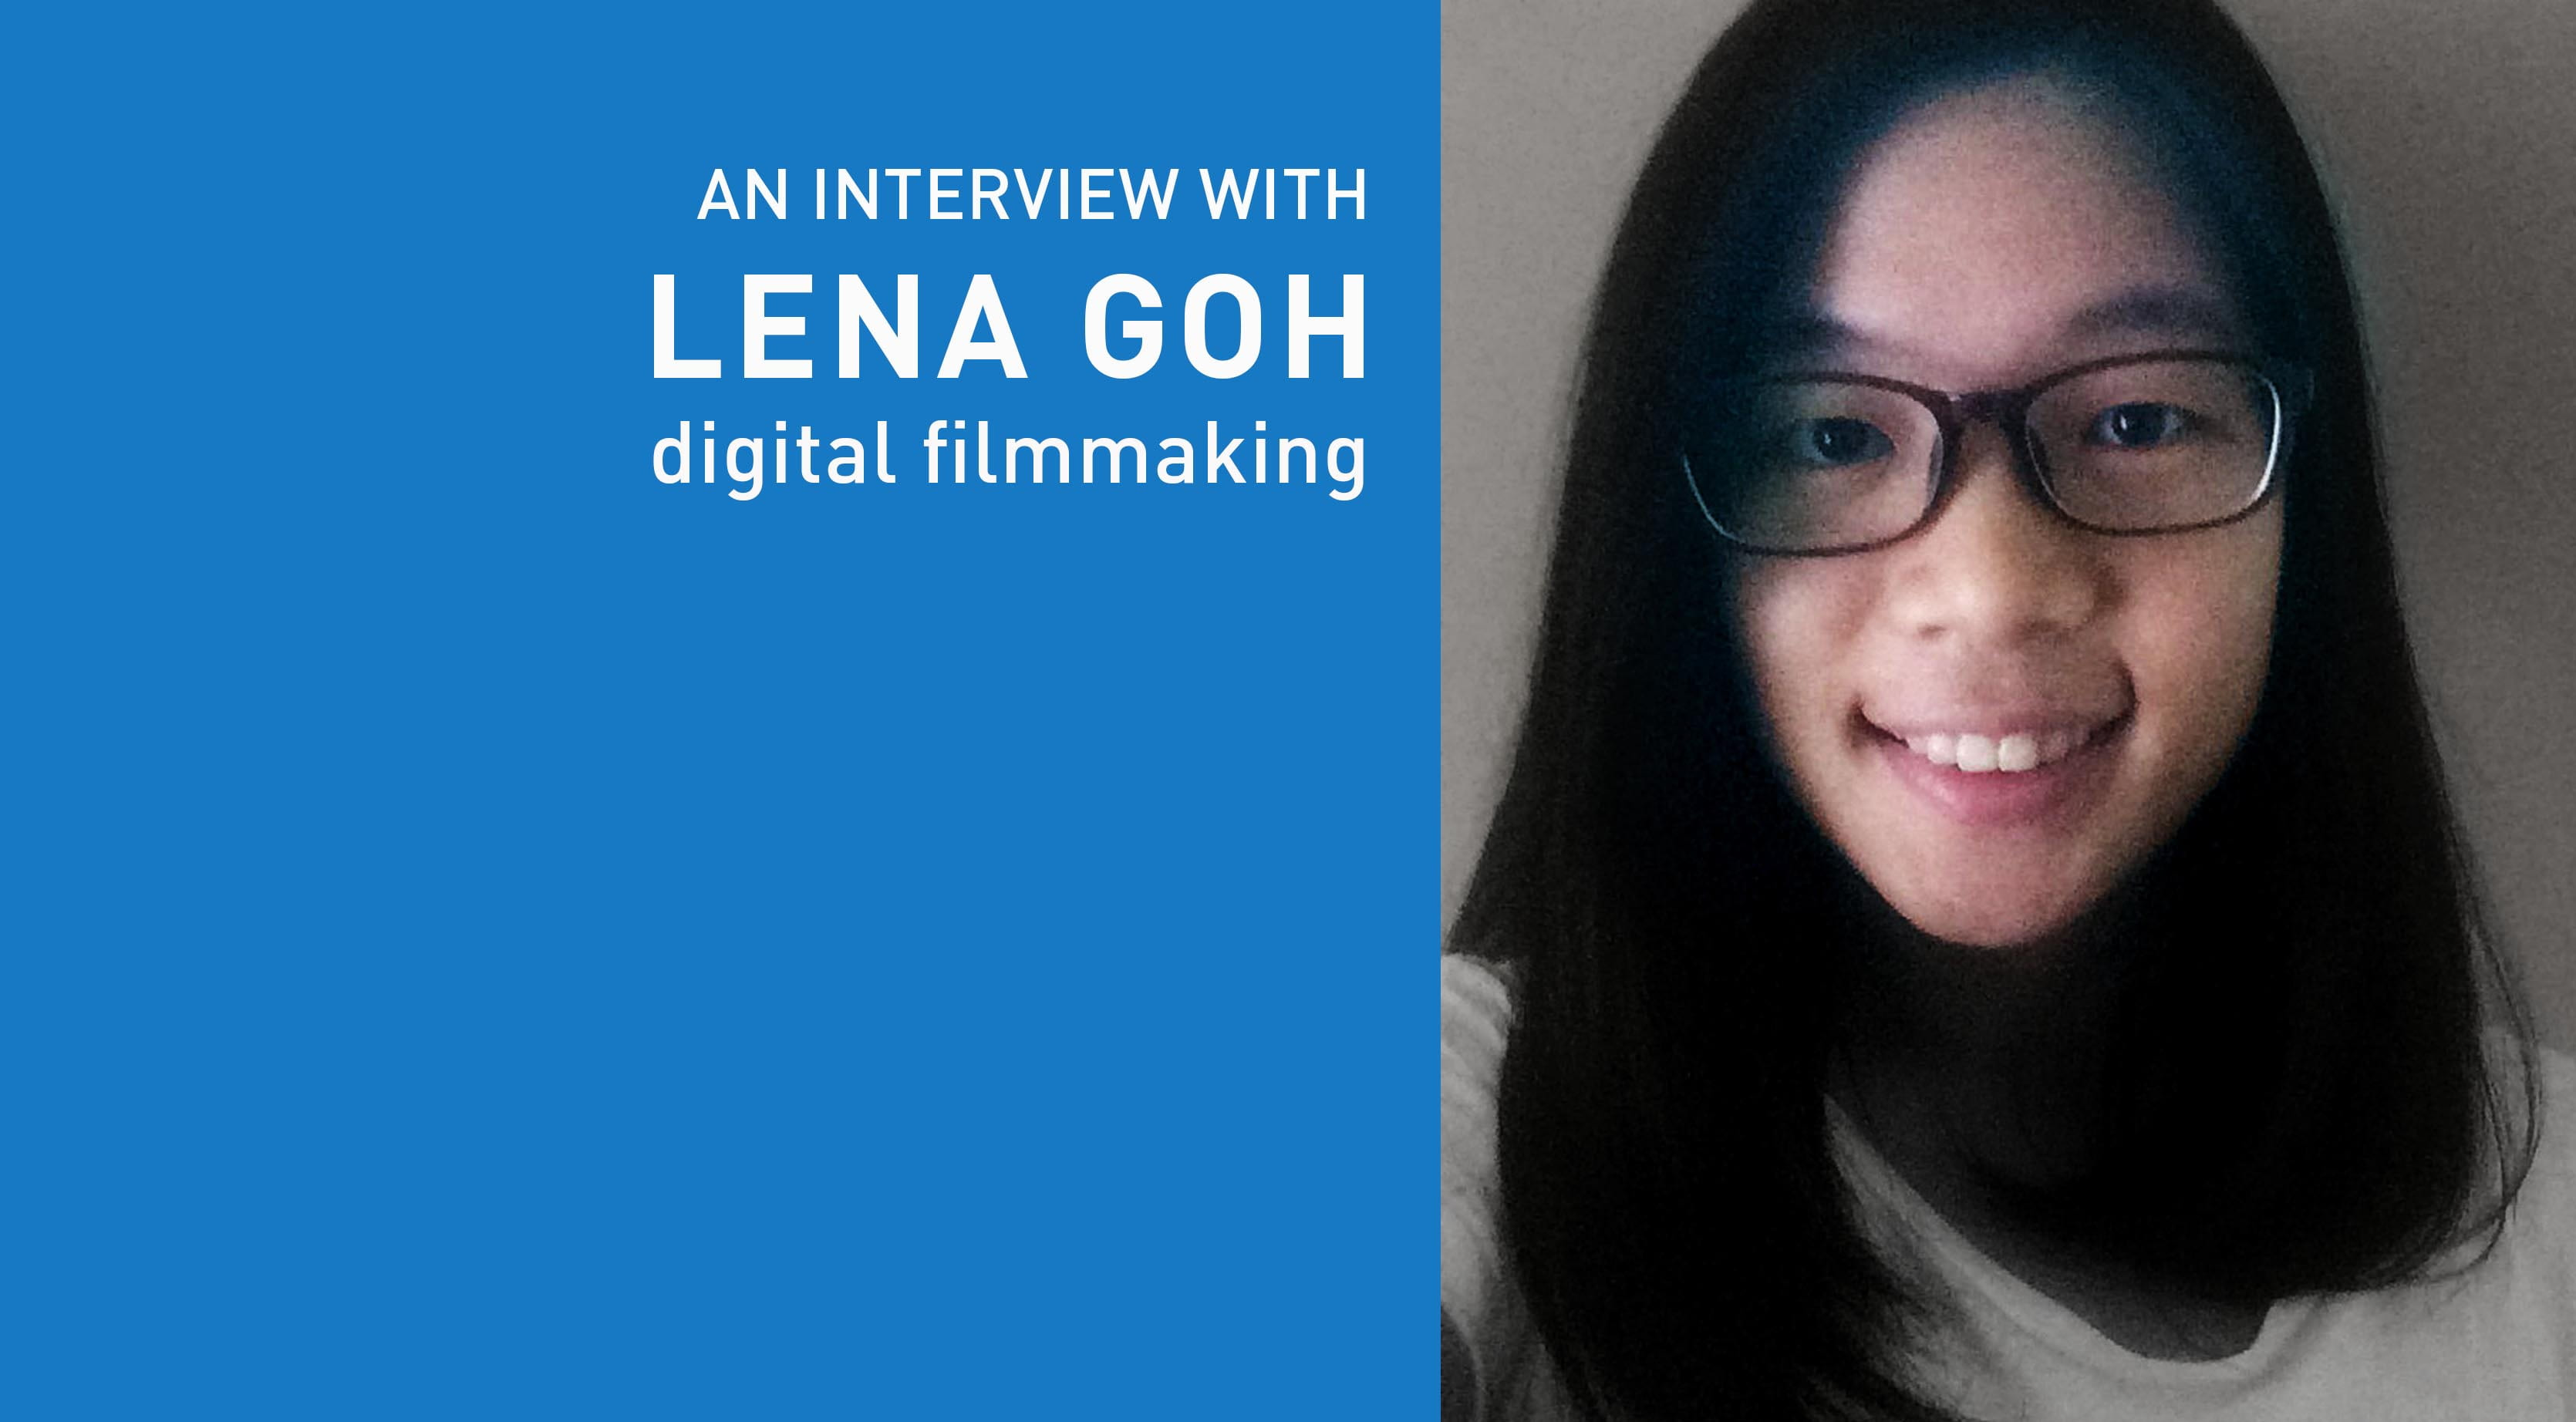 UPCOMING SHOW-AND-TELL WITH LENA GOH